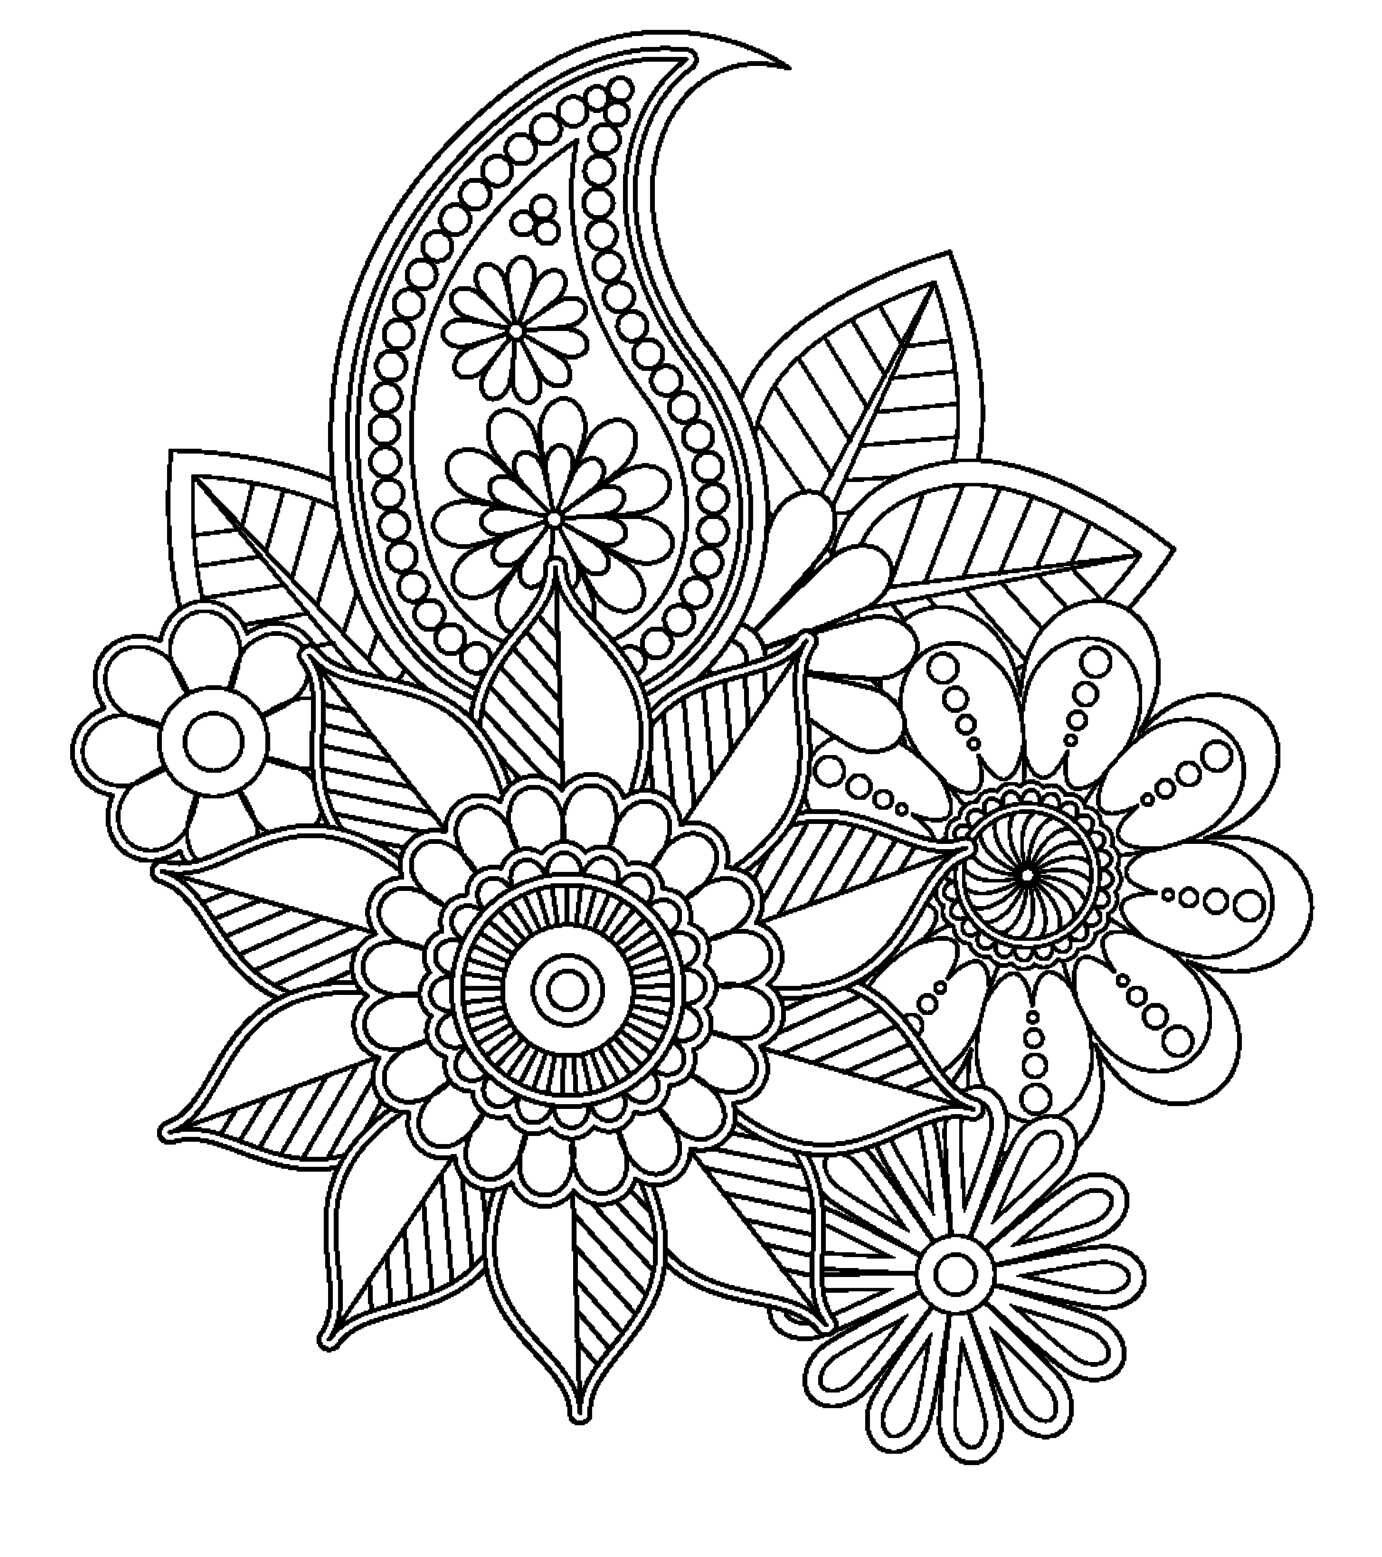 Floral Design To Colour Free Printable Coloring Pages